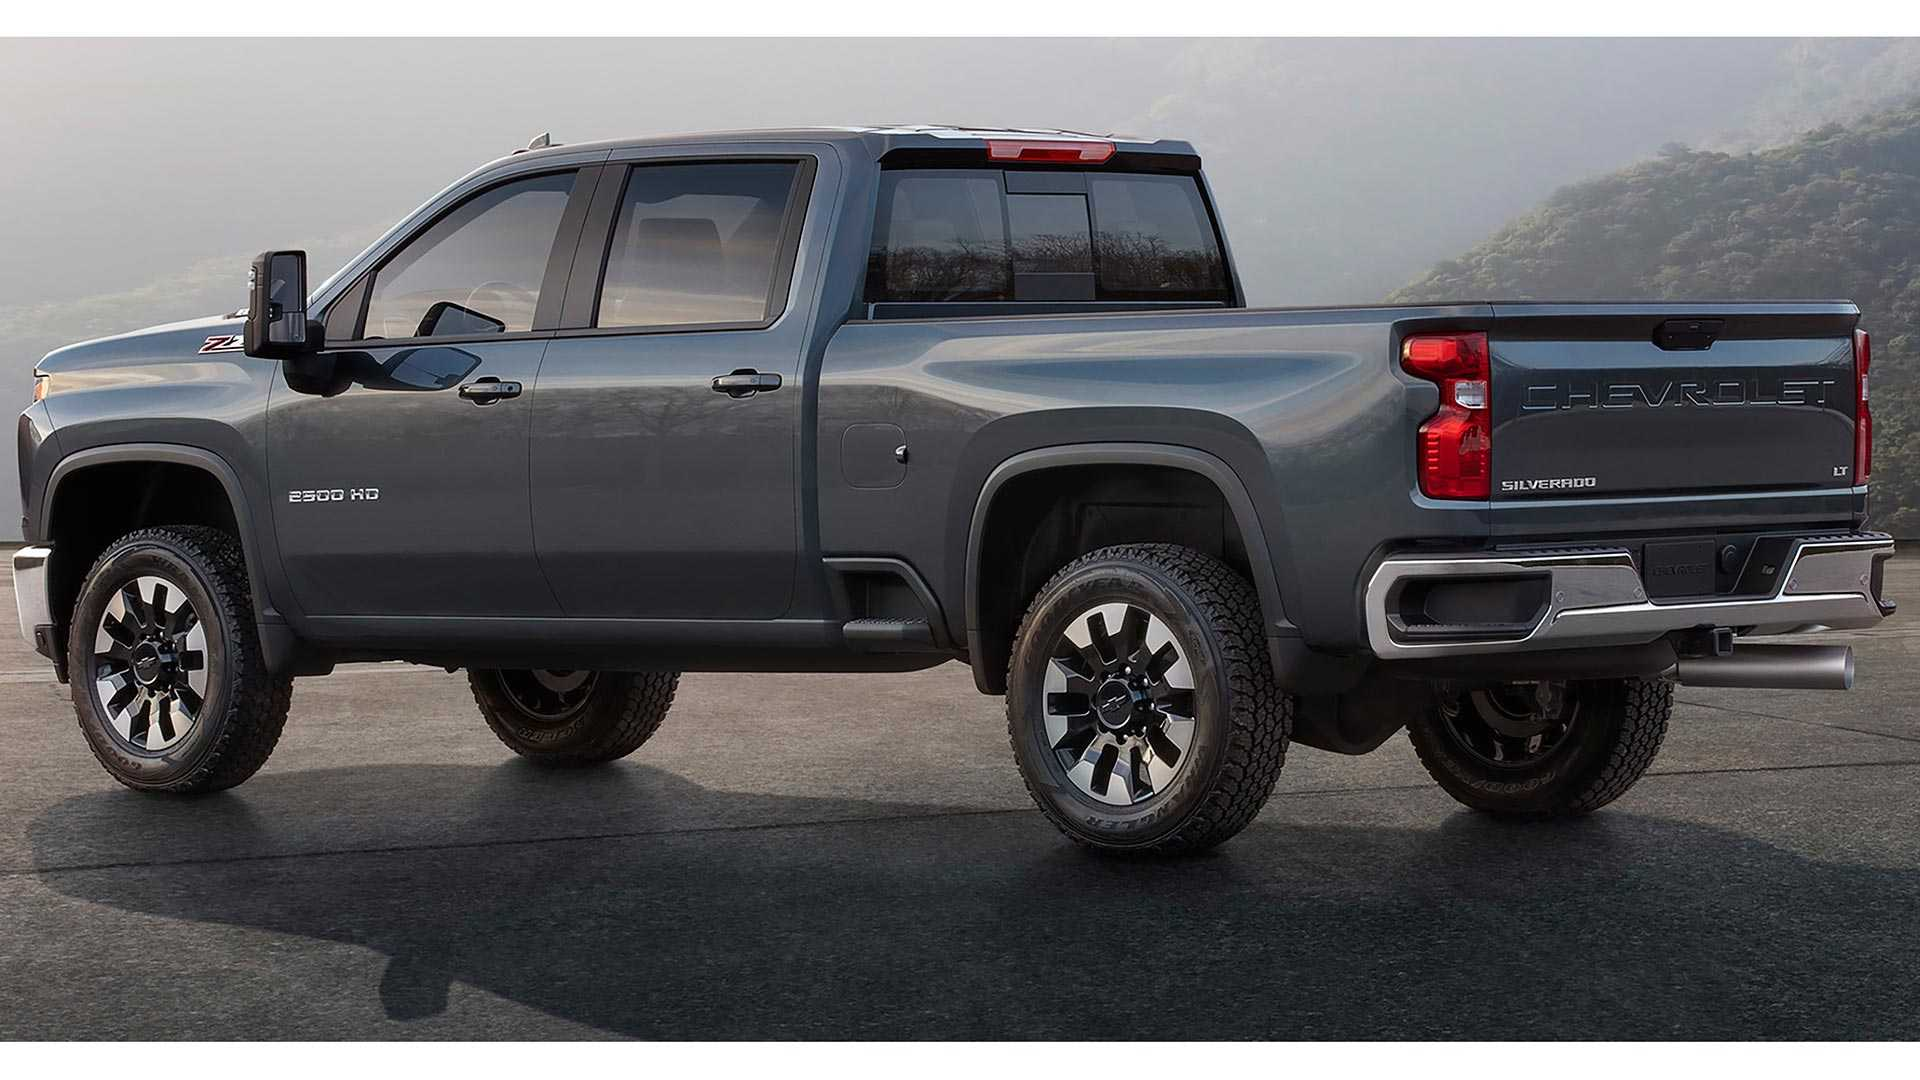 2020 Chevy Silverado Hd Unveiled Getting New V8 And Gearbox